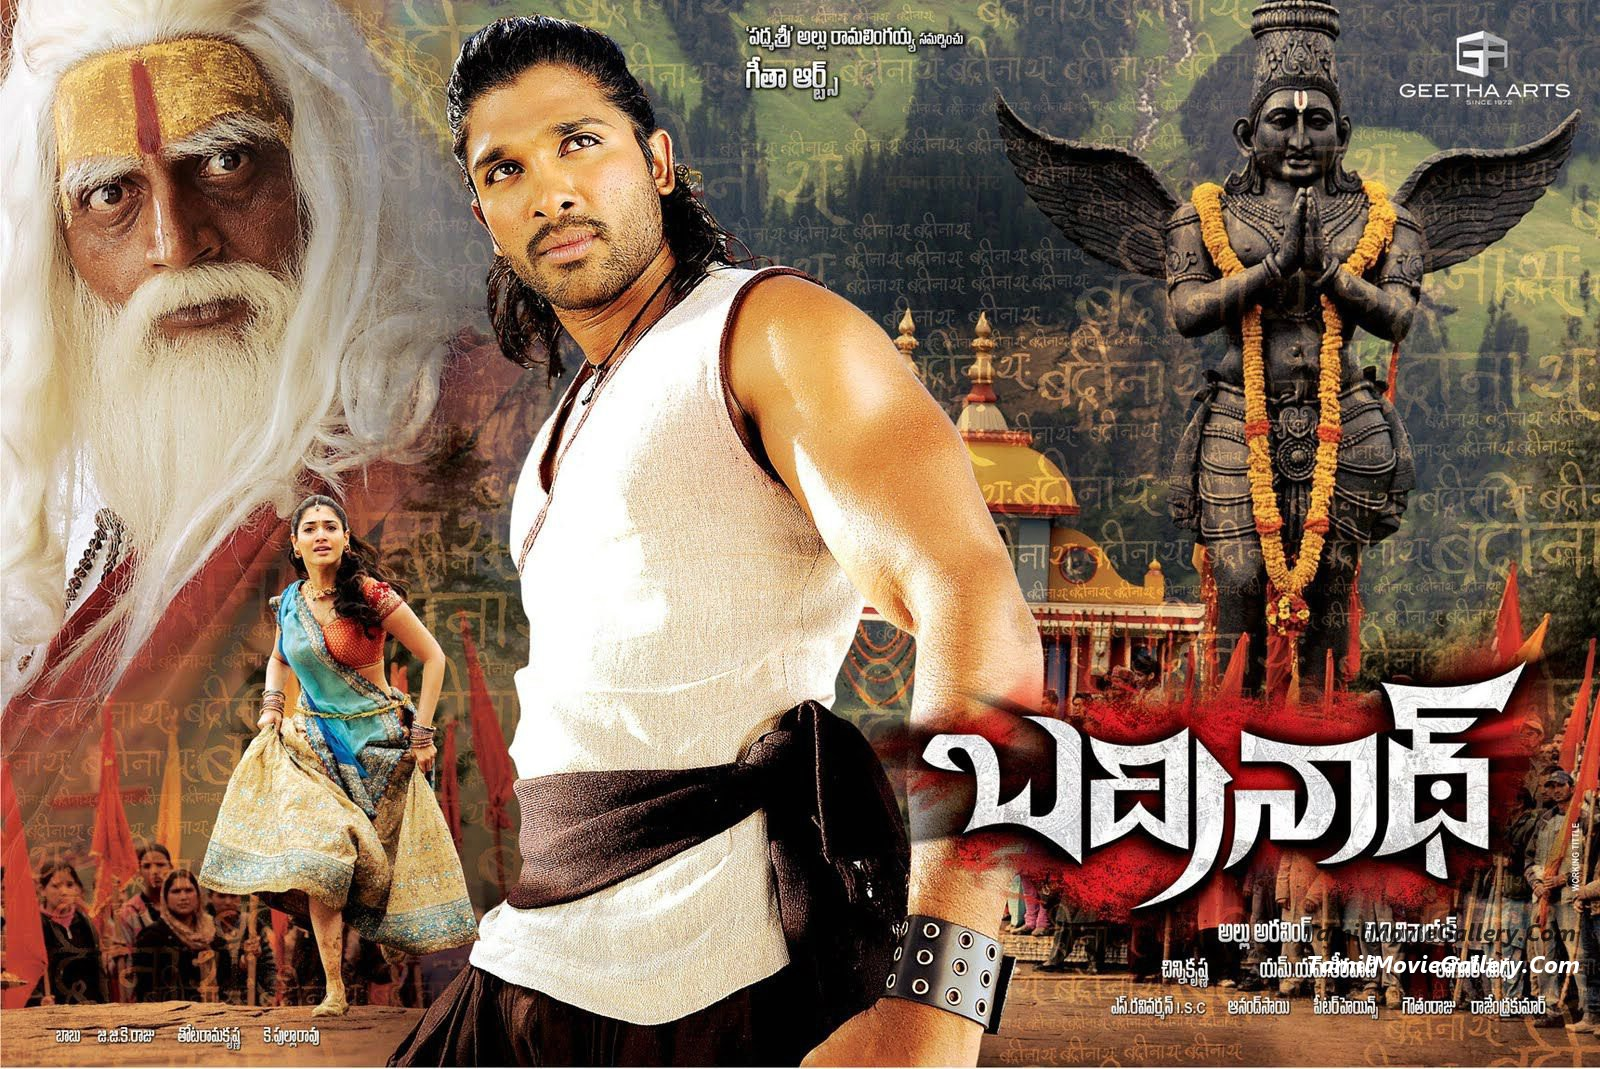 http://4.bp.blogspot.com/-_aUp8jWeNoM/TcFwa8Ze_TI/AAAAAAAAJj8/mDGob2fhXzs/s1600/badrinath_movie_latest_wallpapers_89.jpg